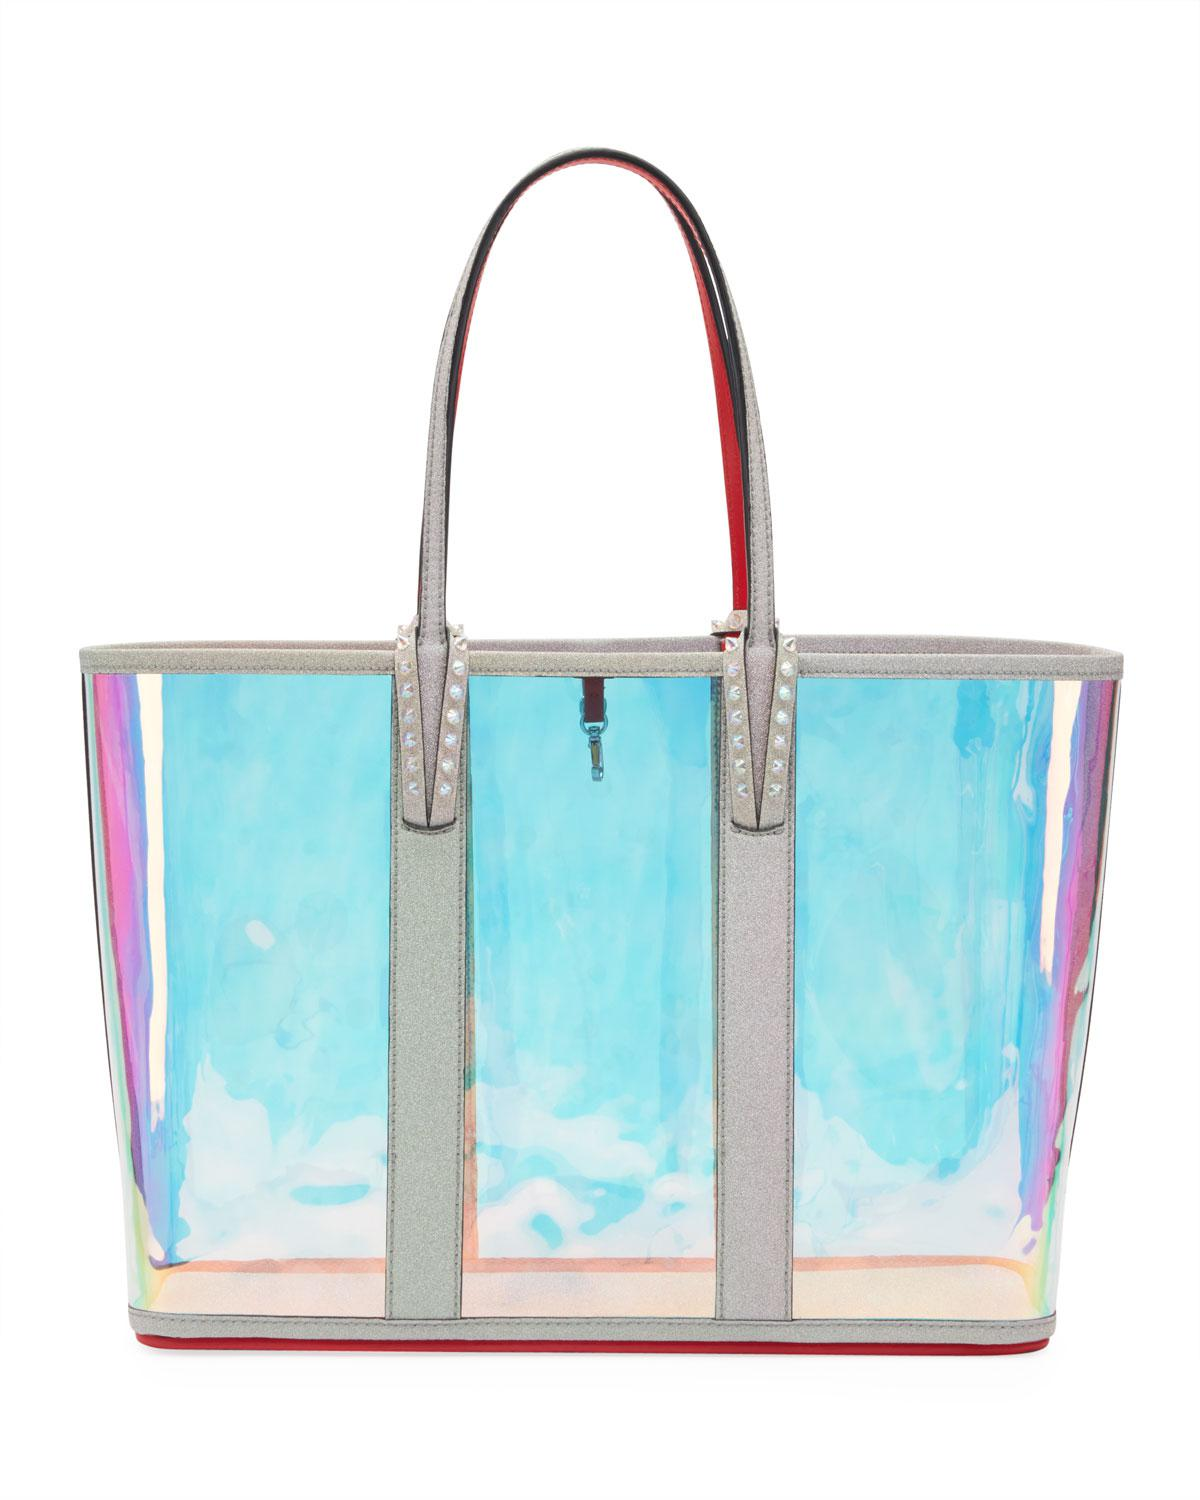 Lyst - Christian Louboutin Cabata Glitter Sunset Vinyl Tote Bag in Blue 08bc8f80ee9f4